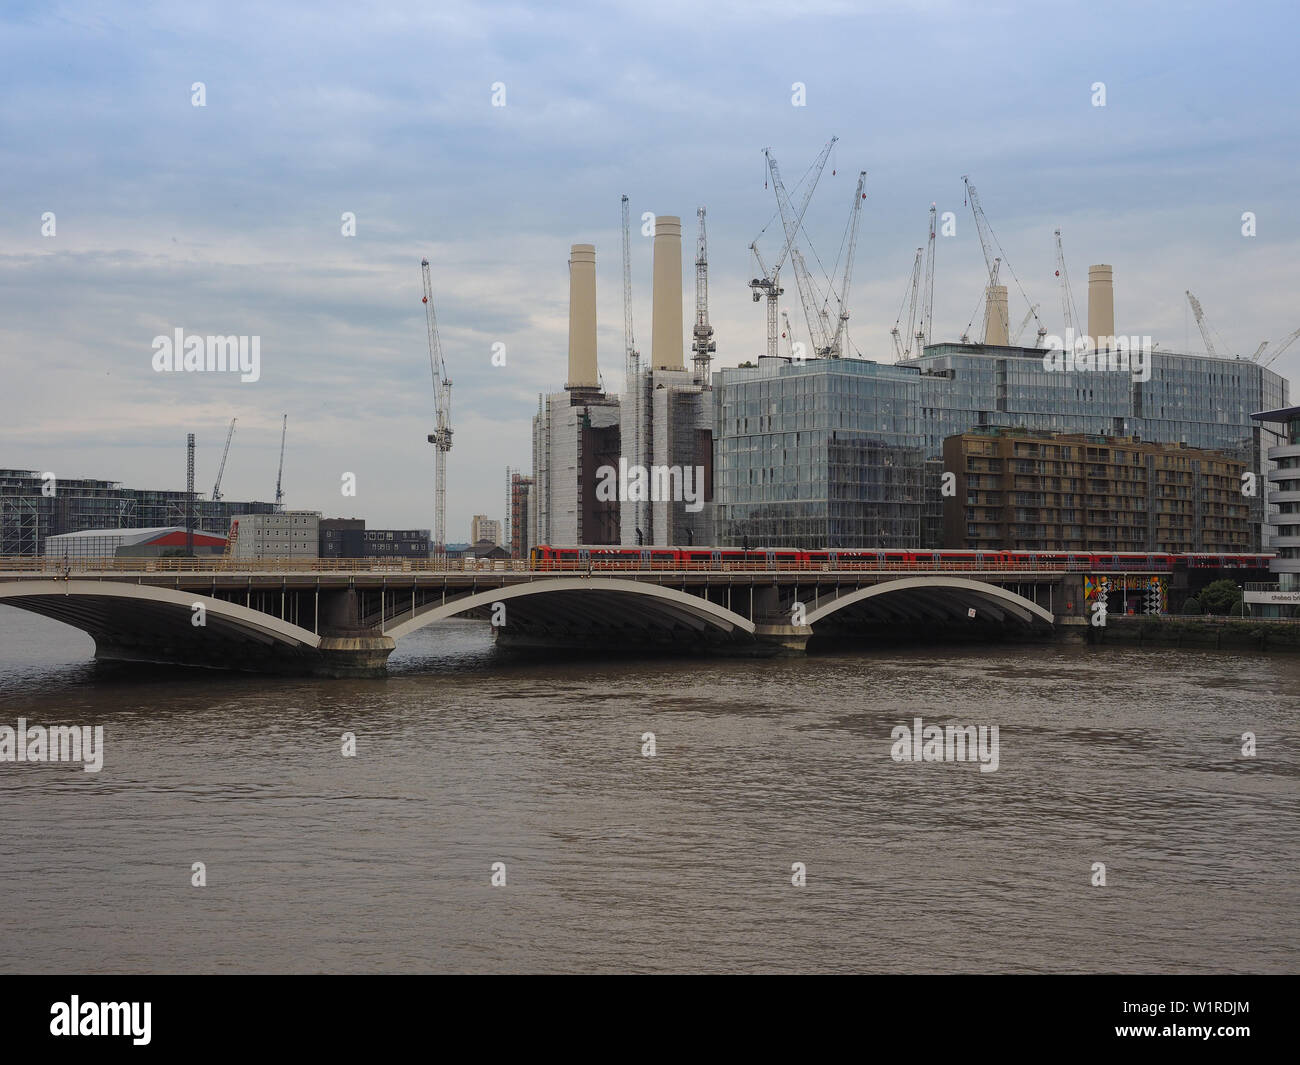 LONDON, UK - CIRCA JUNE 2019: Panoramic view of River Thames with Battersea Power Station and Victoria Bridge seen from Chelsea Bridge - Stock Image